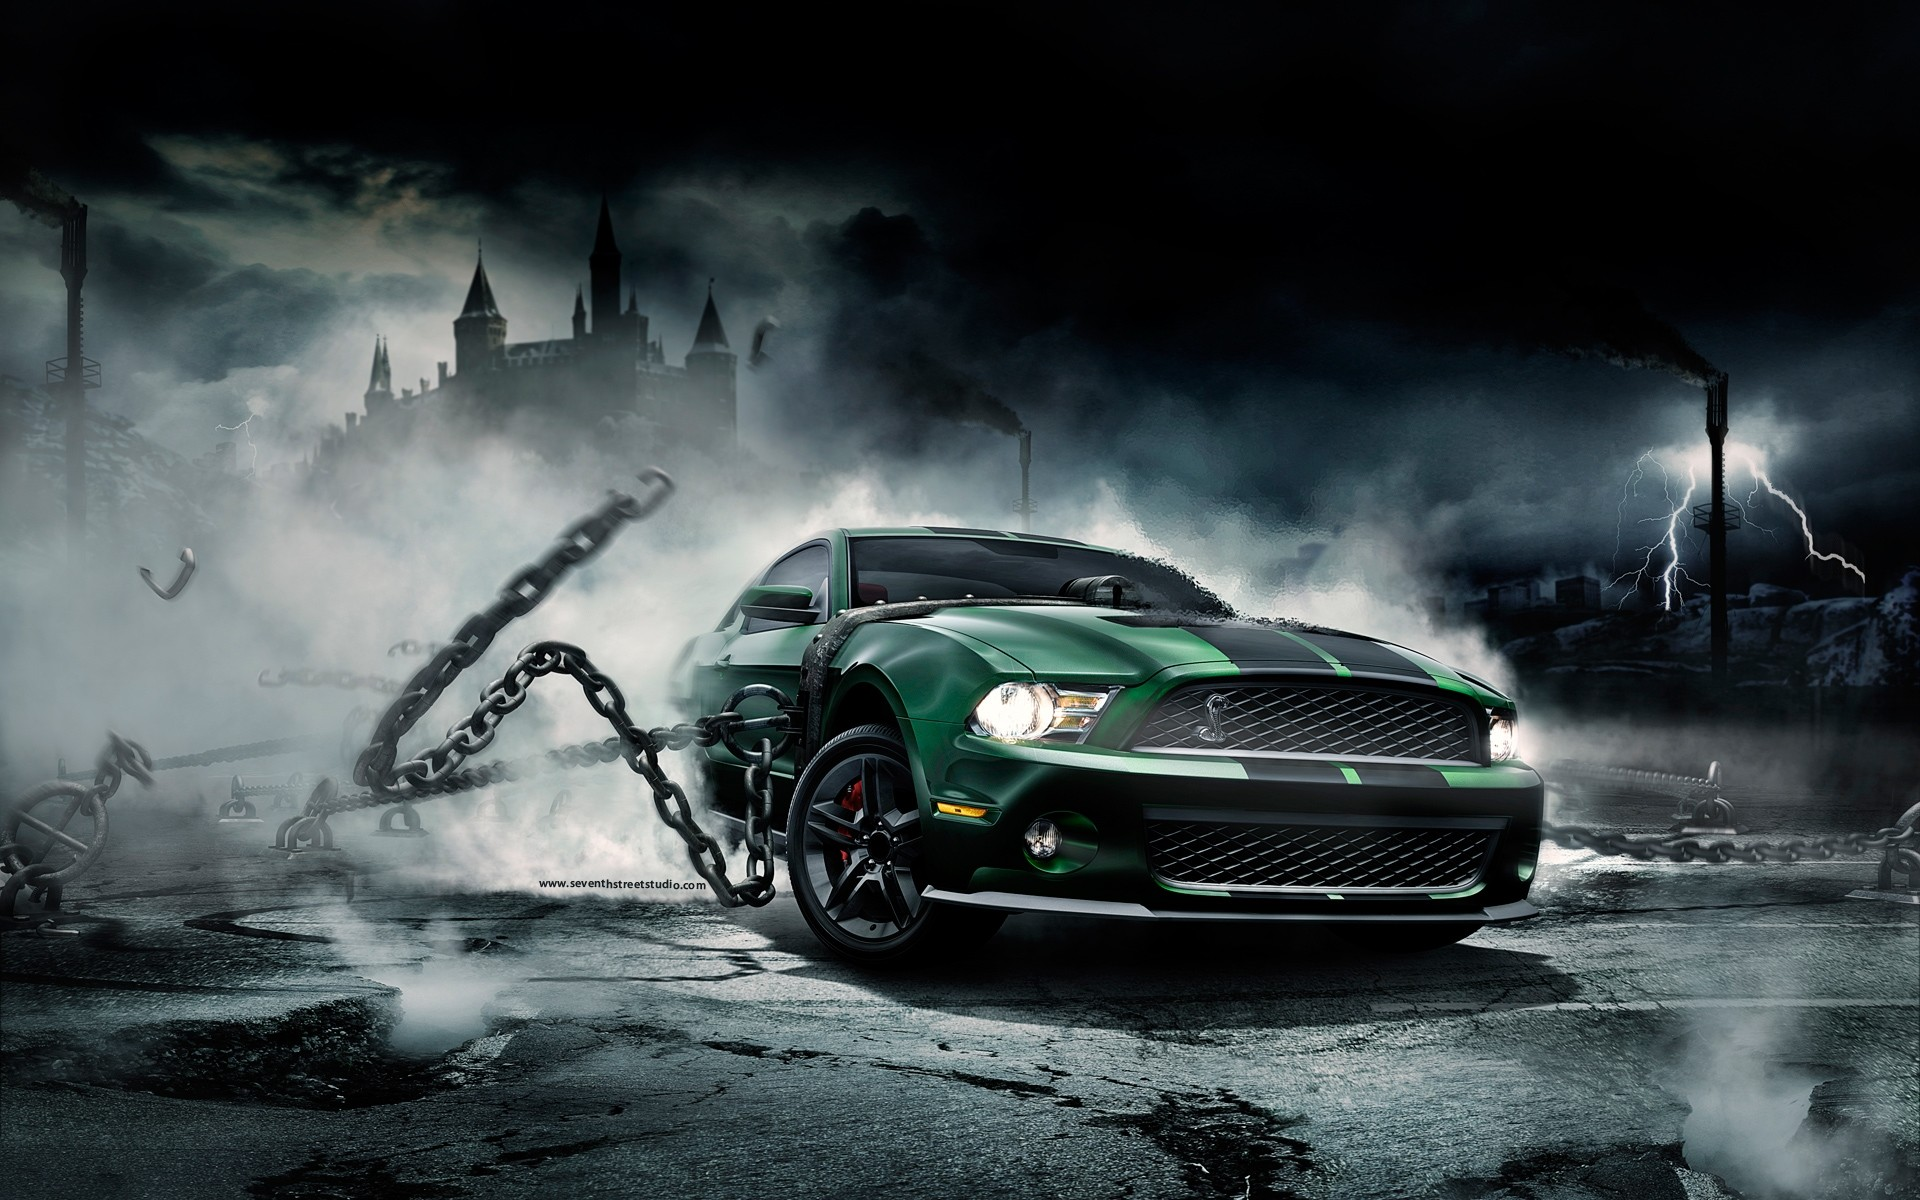 Need for Speed Most Wanted HD Wallpaper | High Definition Wallpapers (HD  Wallpapers 1080p) | Pinterest | Hd wallpaper and Wallpaper